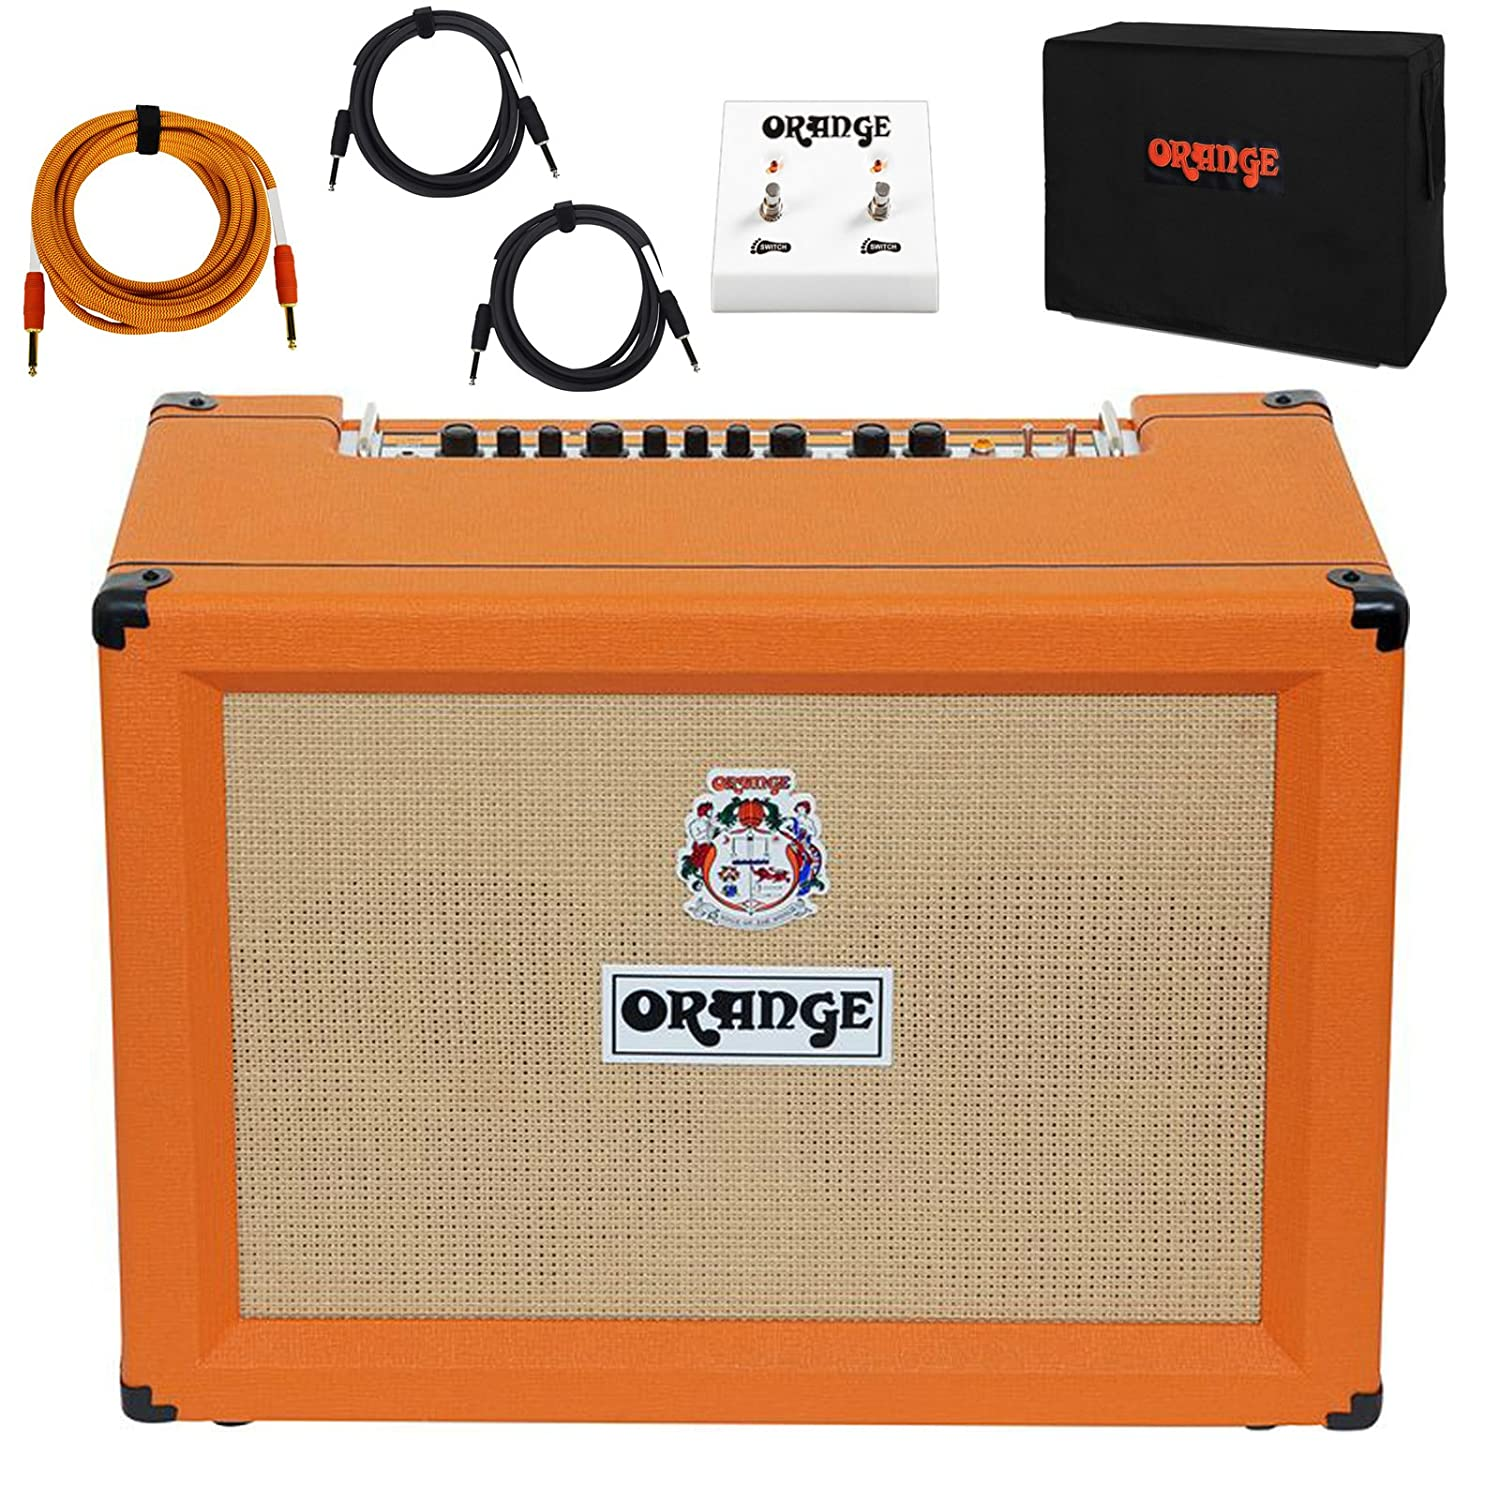 Orange Crush Pro CR120C 2x12 Combo Amp Guitar Amplifier 120 Watts with Bundle